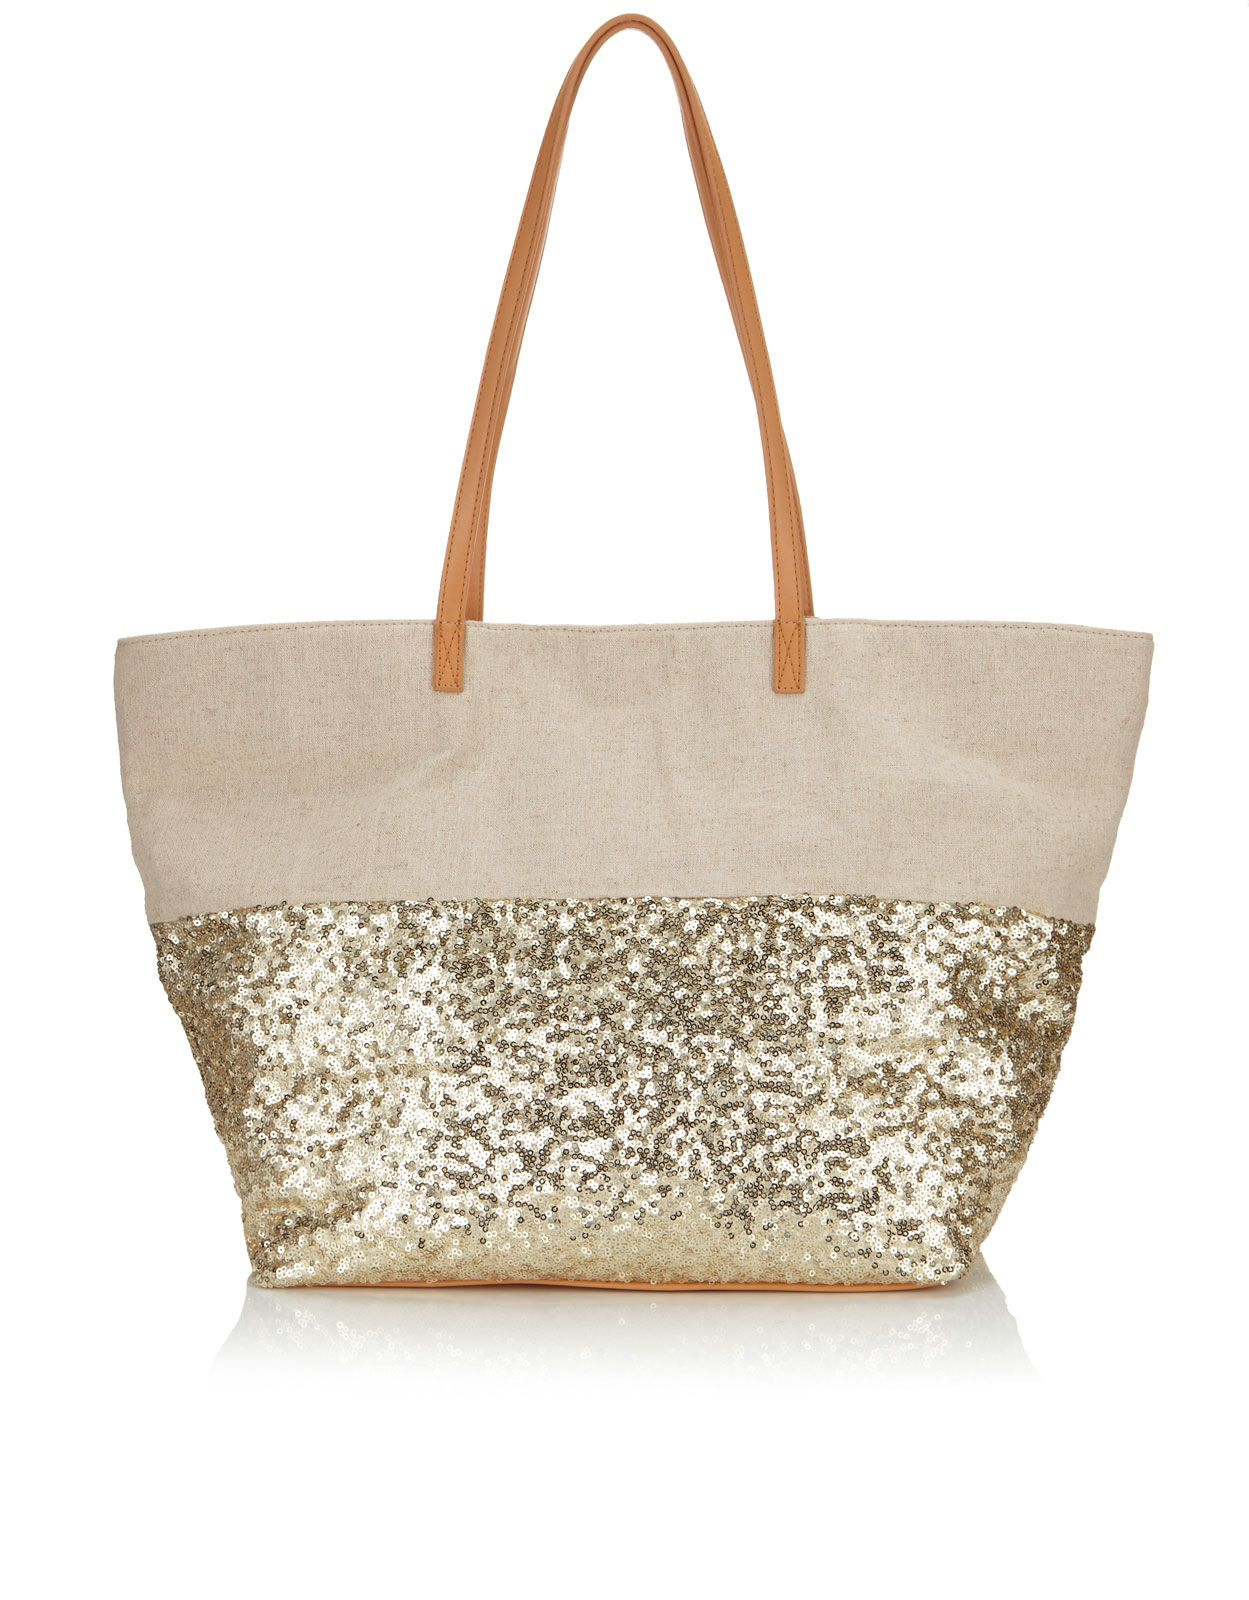 Sequin Beach Tote Bag $54 | Accessories | Pinterest | Beautiful ...